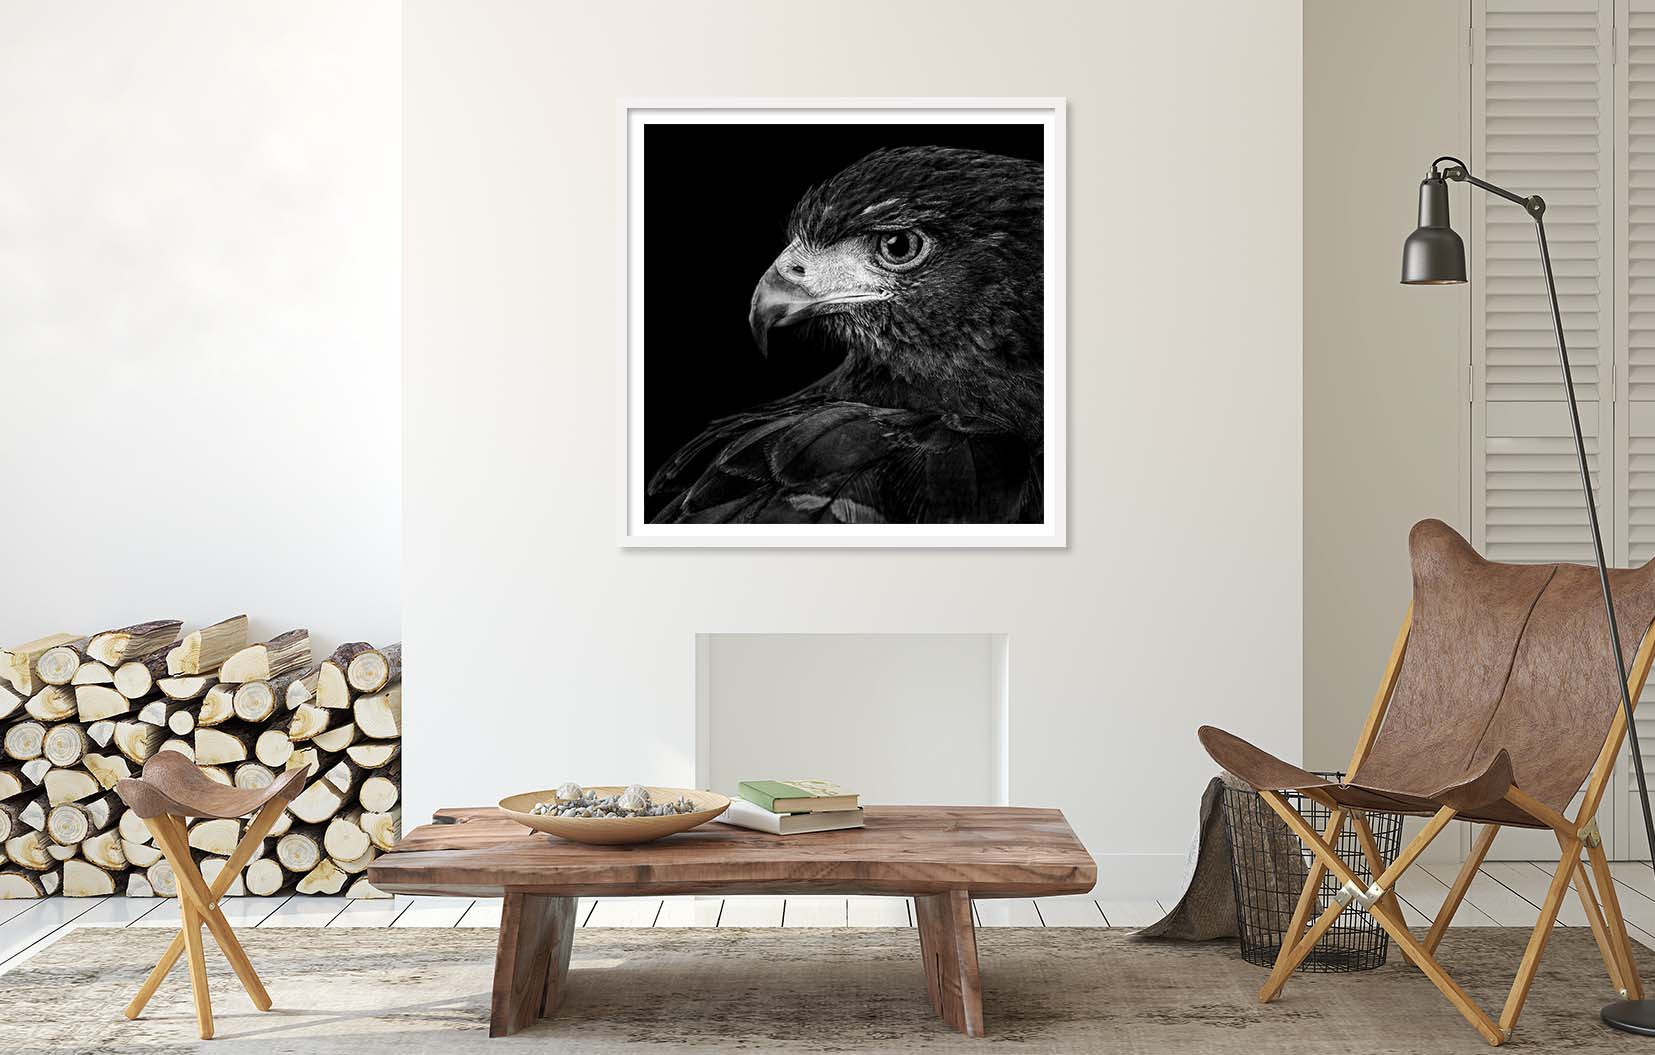 A black and white limited edition portraits of a Harris Hawk. Bird portraits in the Raptor series by fine art photographer Paul Coghlin.